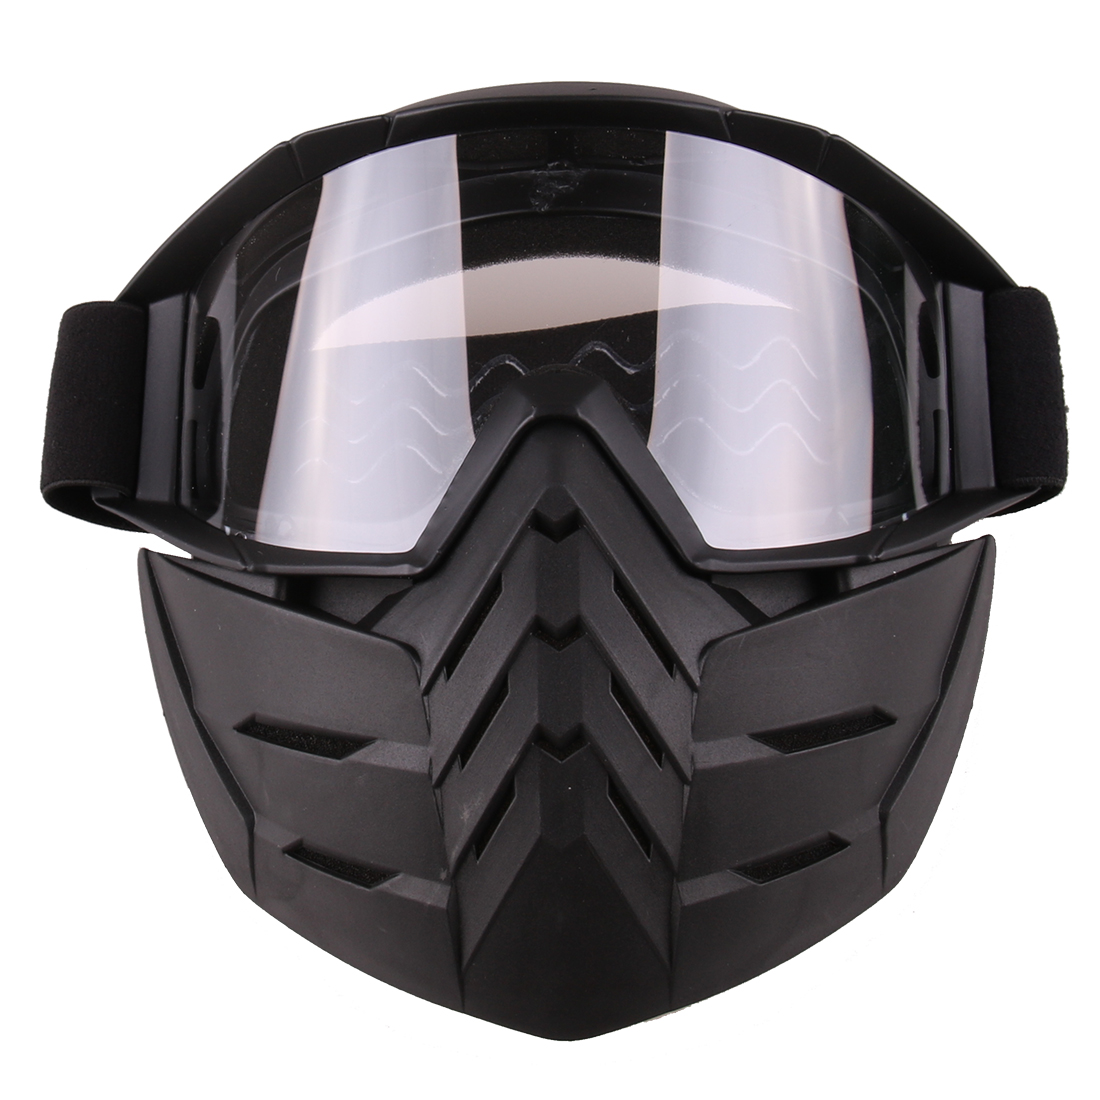 Airsoft Cool Tactical Mask Soft Bullet Dart Eye Protective Mirror Face Mask For Outdoor Paintball WG Shooting Protective Mask